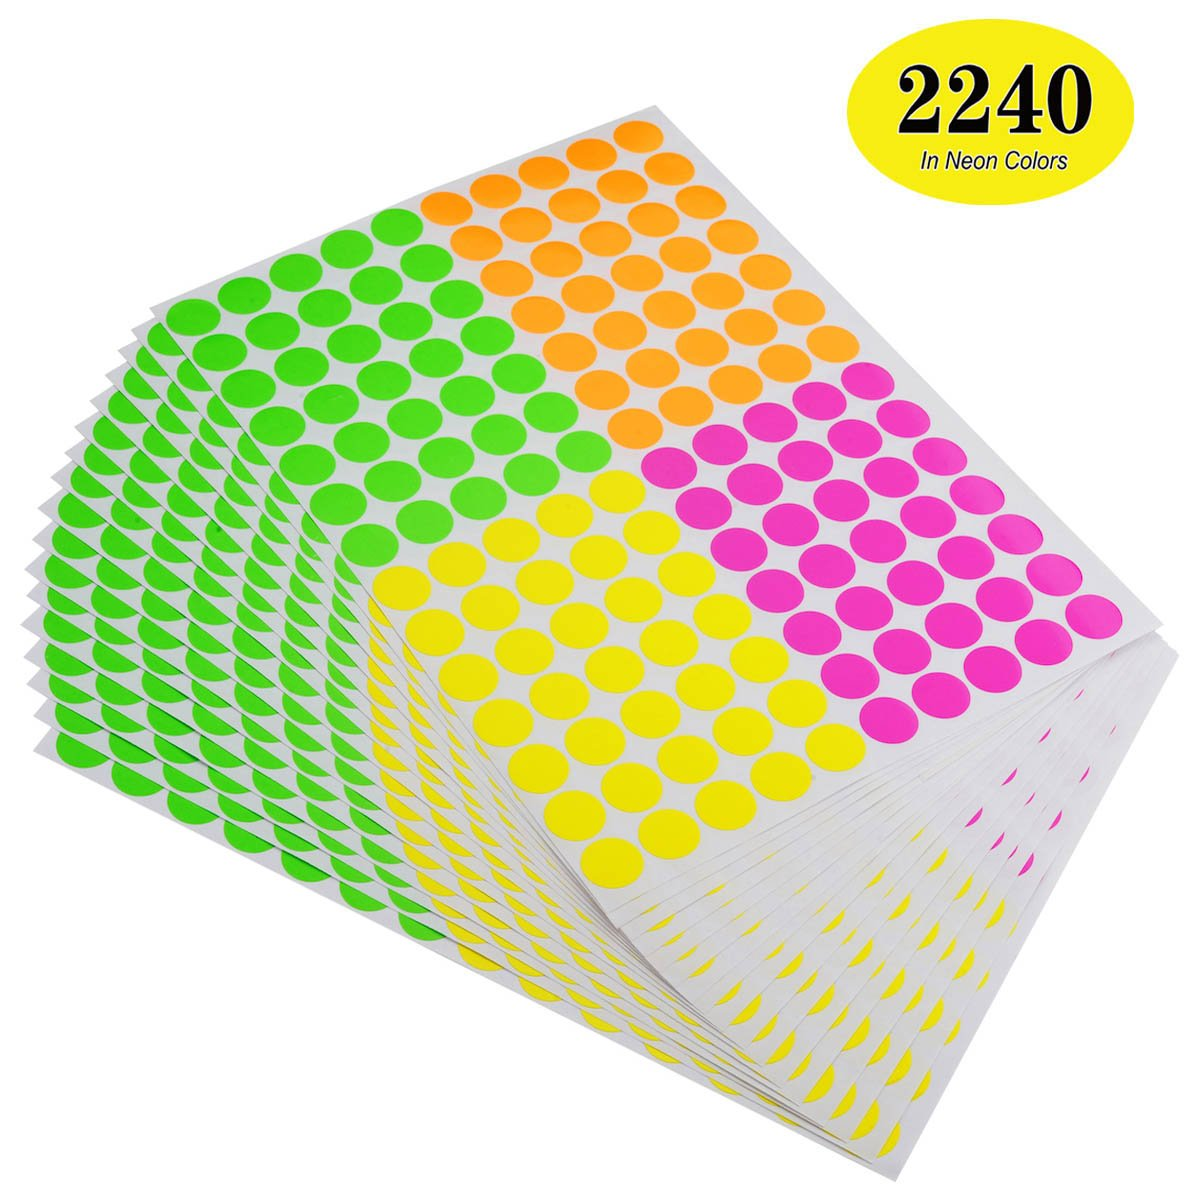 ONUPGO Pack of 2240 Round Color Coding Labels Circle Dot Stickers, 3/4'' Fluorescent Dot Labels Sticker, Bright Neon Colors Label (Assorted Neon Colors - (Pink, Green, Red, Yellow)) by OnUpgo (Image #1)